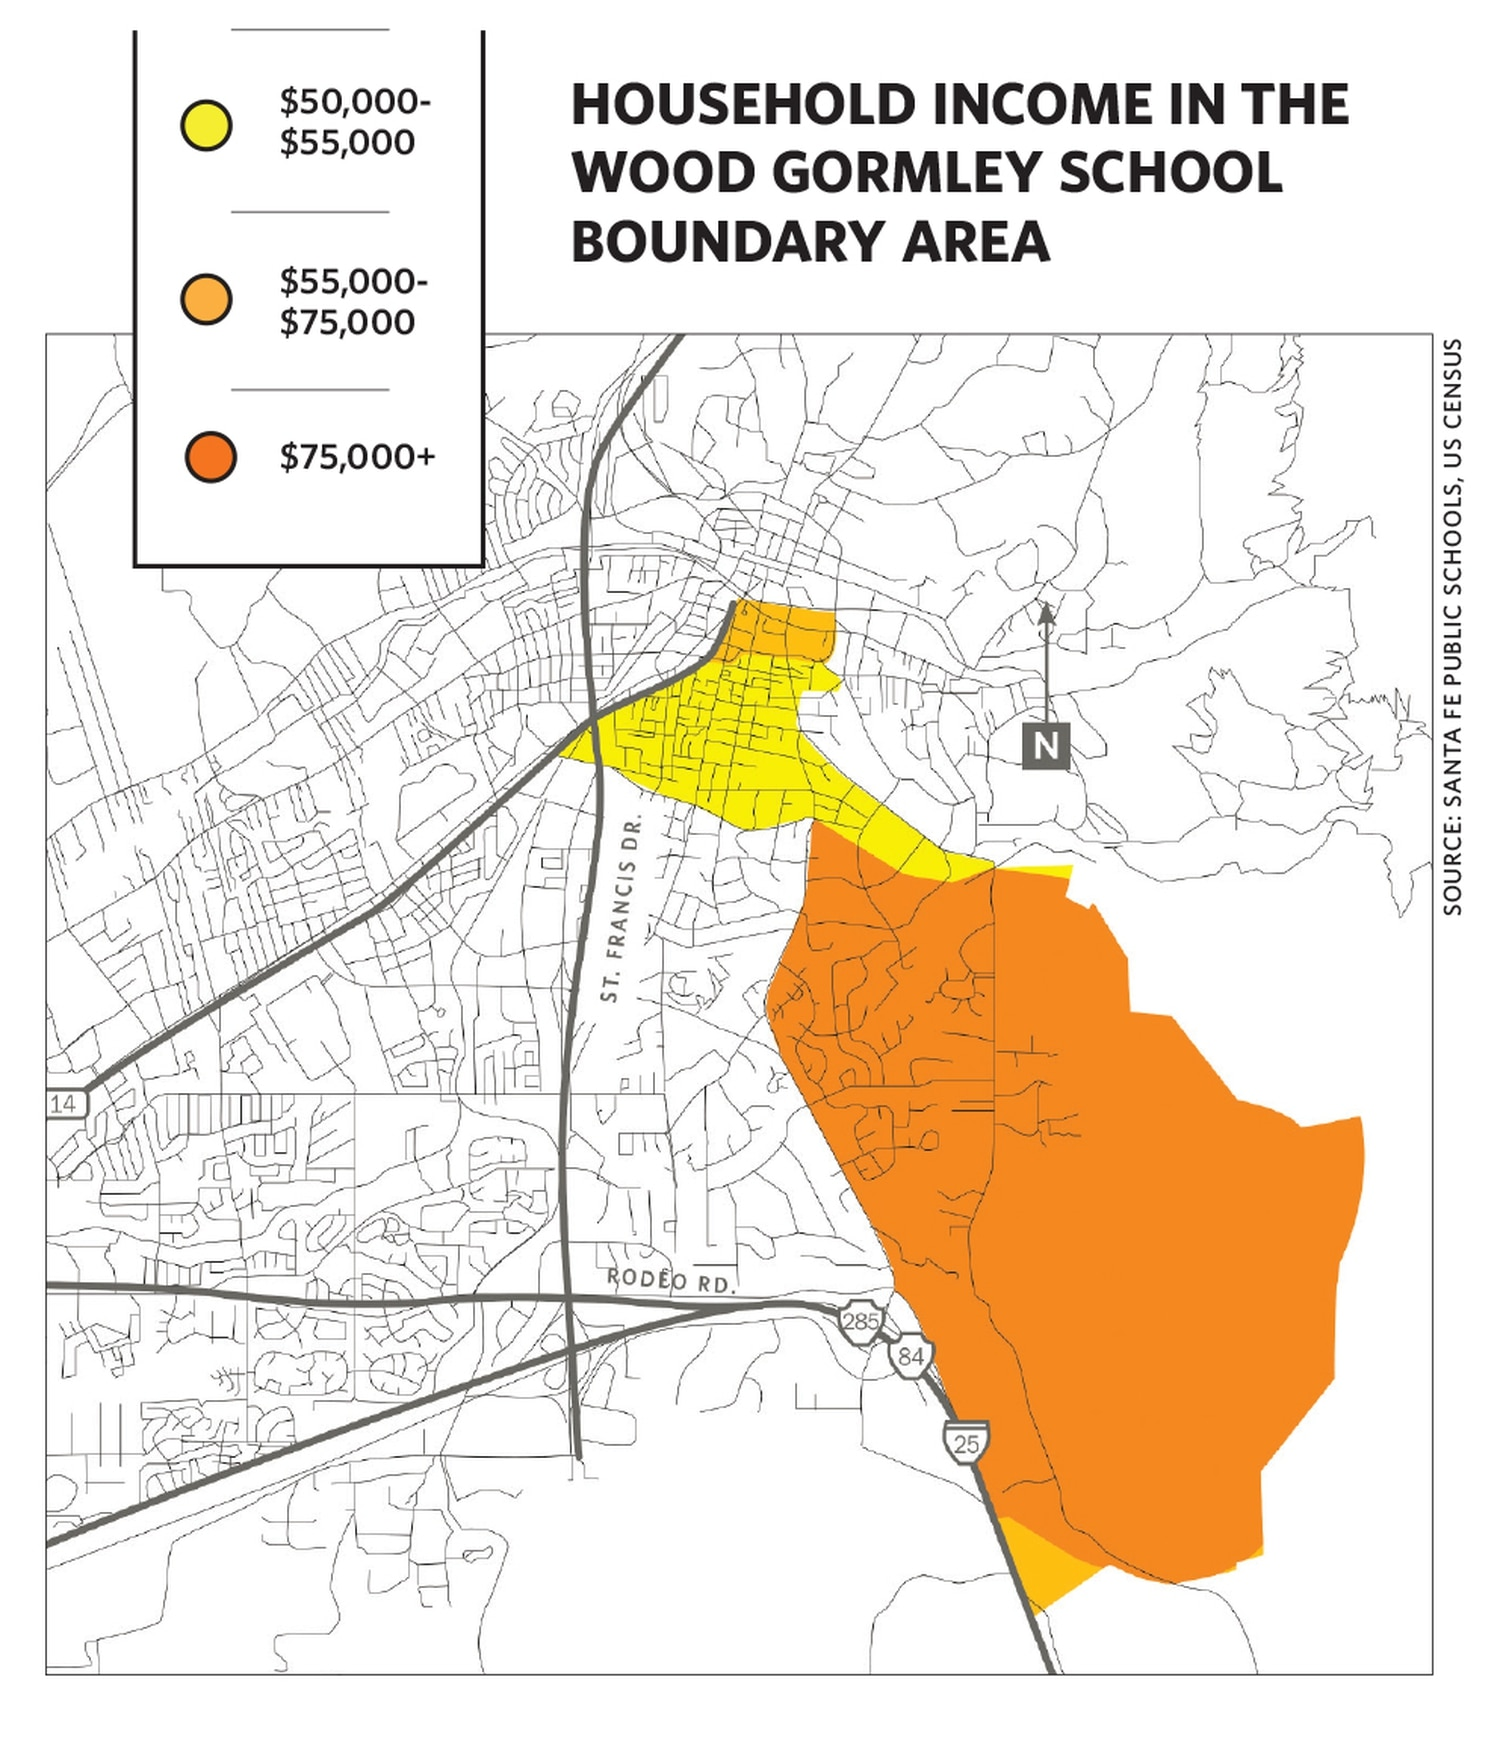 Children who live outside Wood Gormley's boundaries but want to attend the high-performing elementary school face a competitive interzone transfer process. But as a recent graduate student's research shows, even students who have been allowed to transfer into the school come from census tracts with similar levels of wealth.